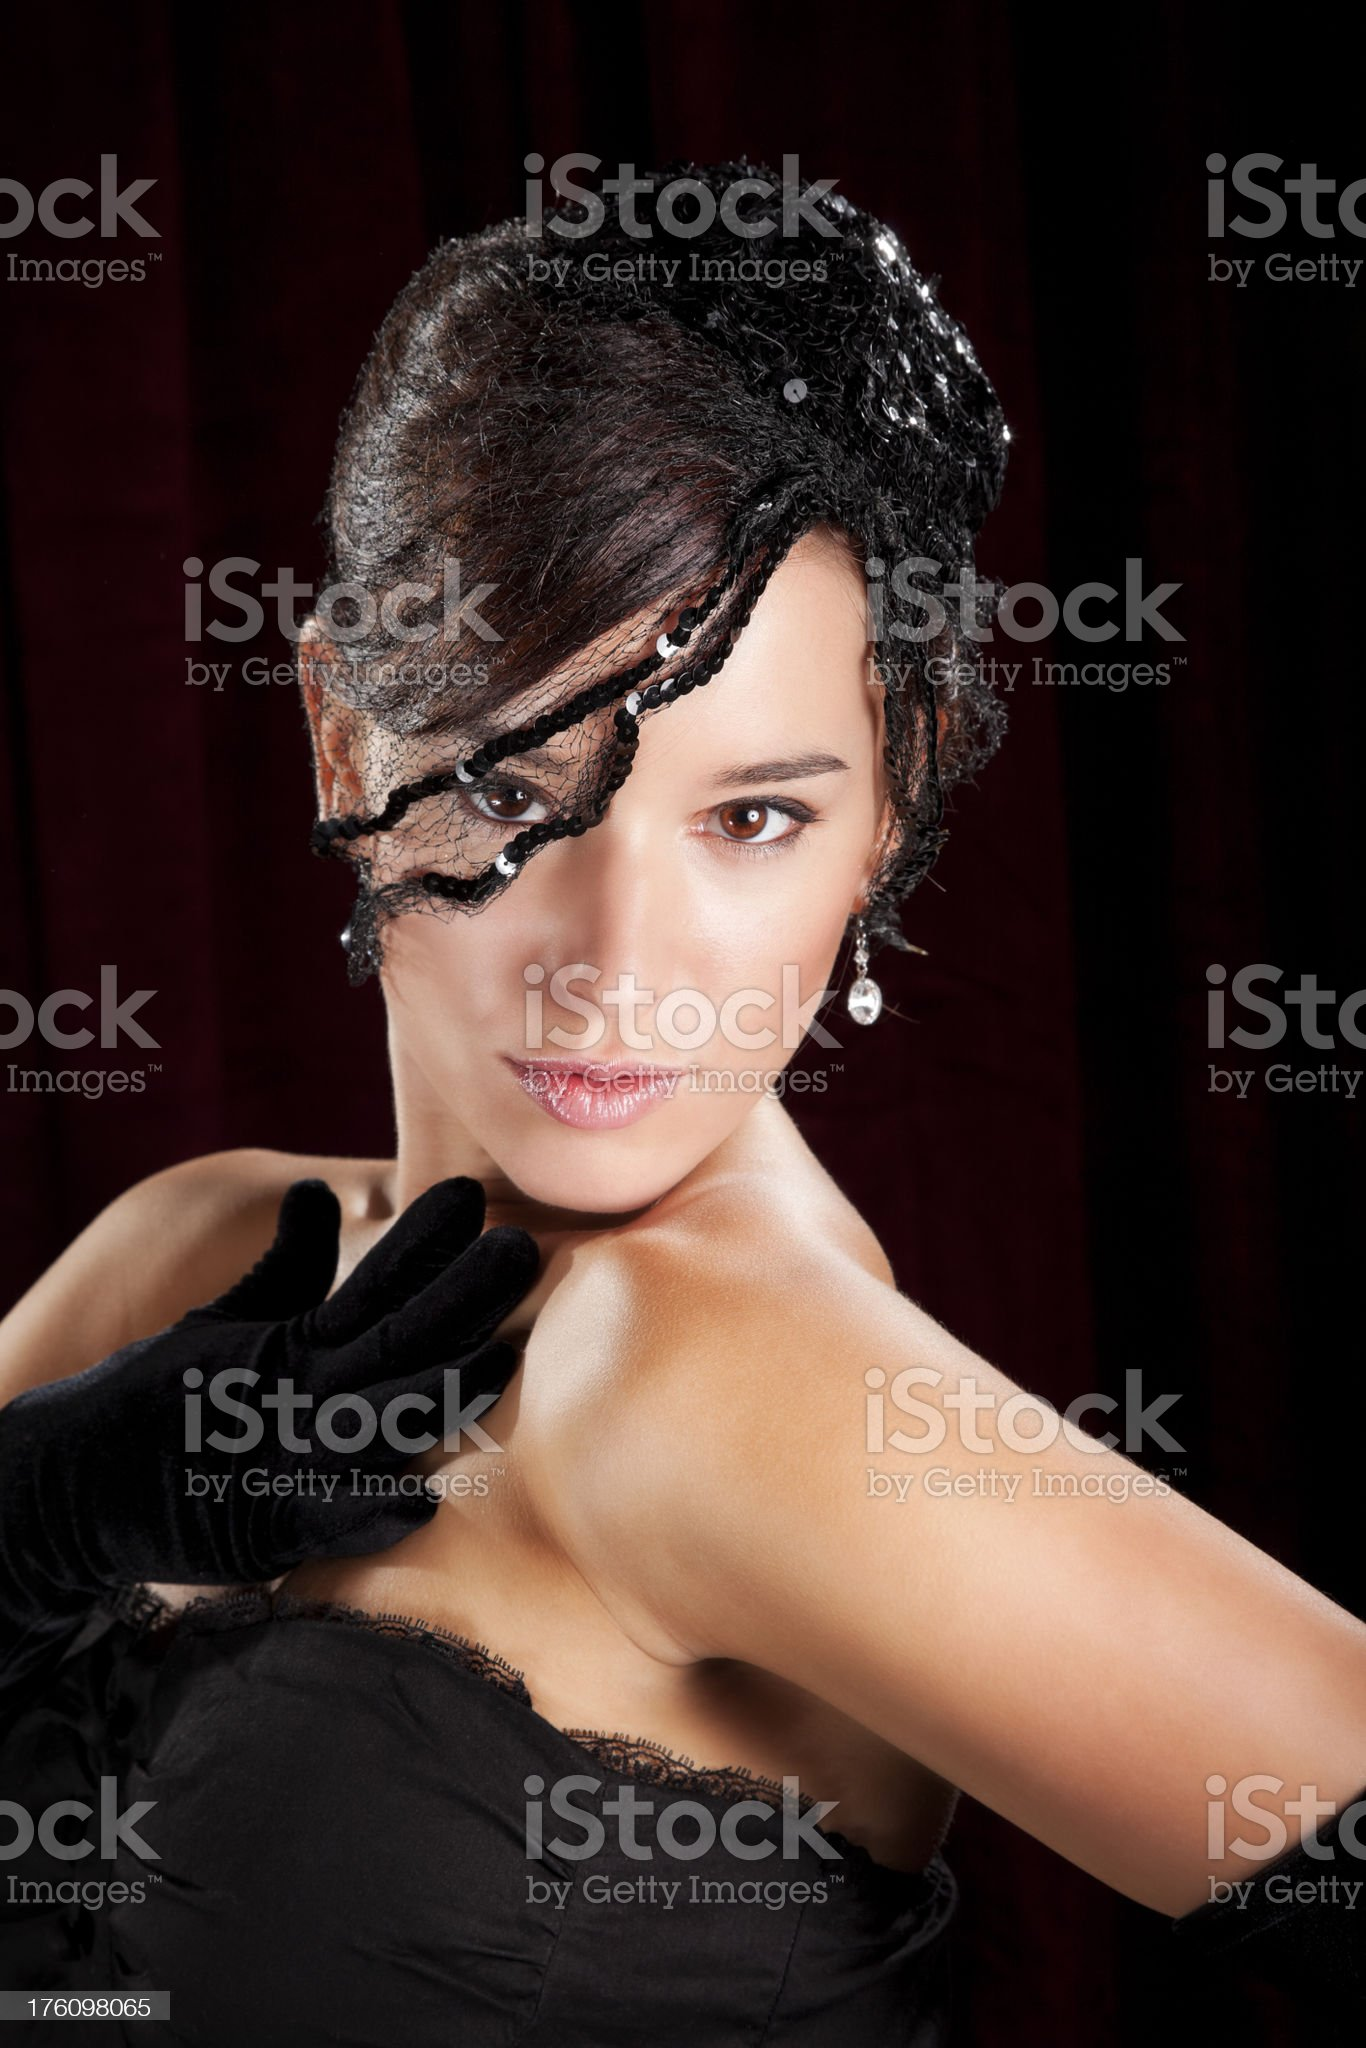 Glamorous Young Woman in Netted Hat royalty-free stock photo